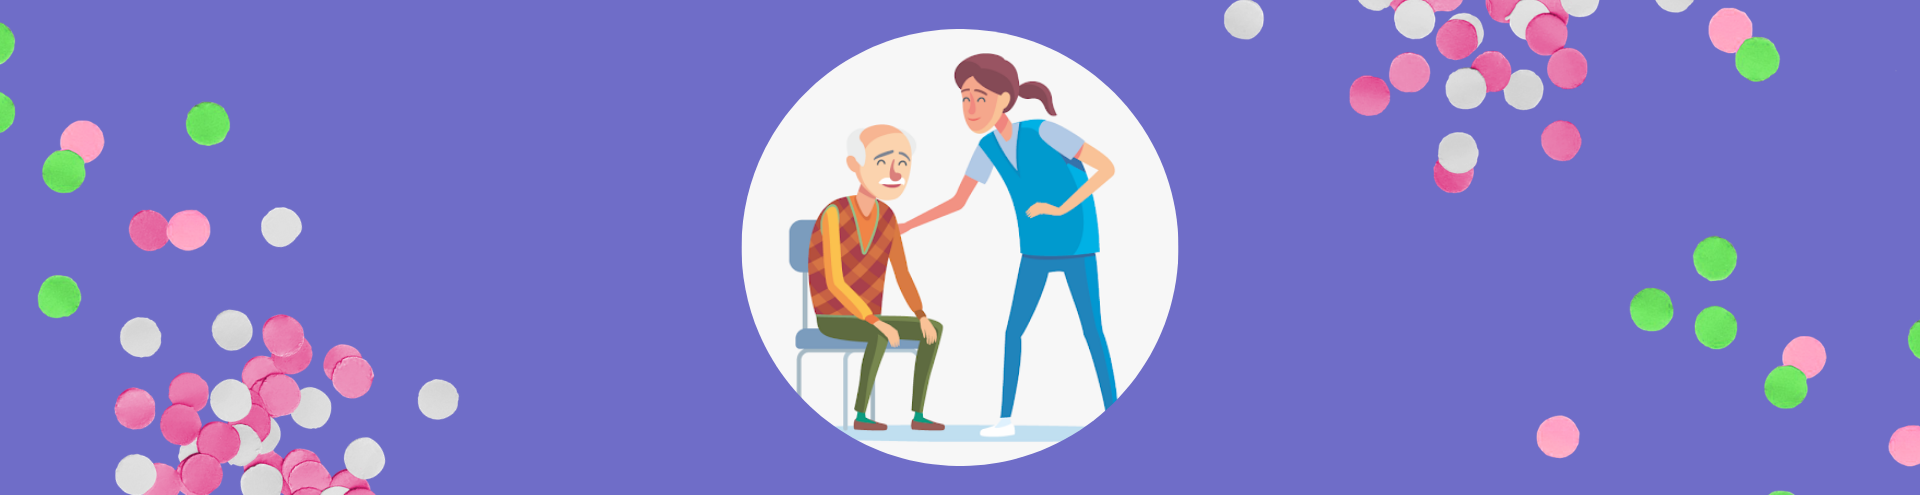 Elderly Caregiving App Development [Interview with Constantine Karampatsos - an Industry Expert - Included]